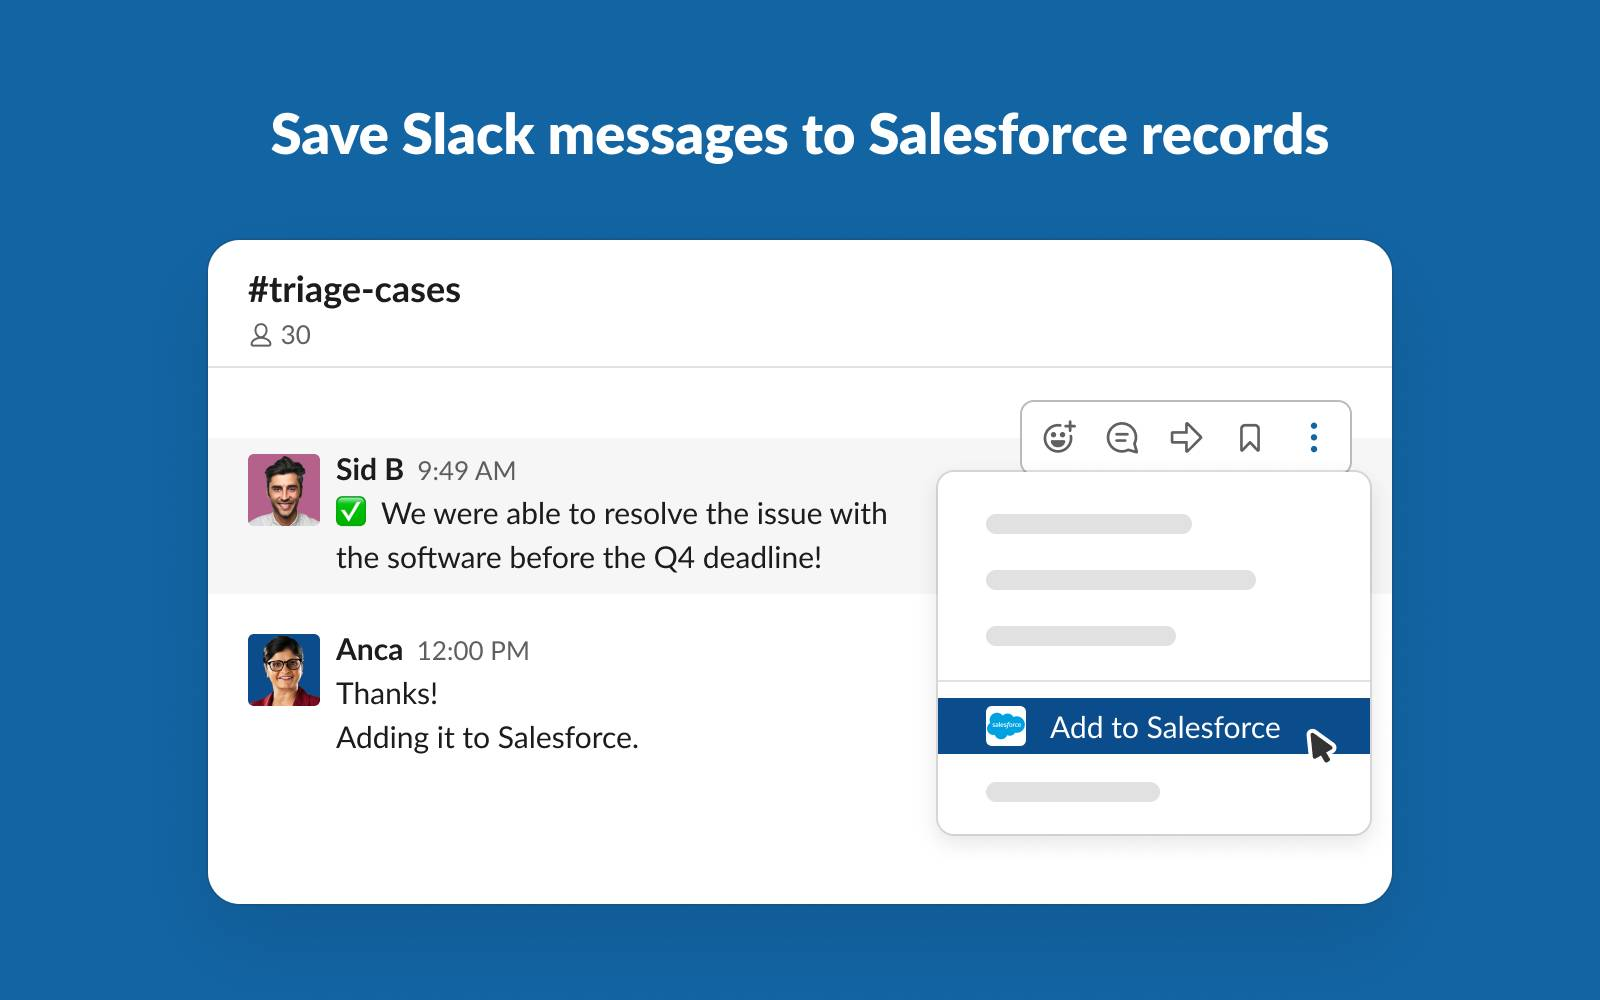 Image of a Slack message in the #triage-cases channel between Sid and Anca about the case resolution, with the Add to Salesforce button highlighted